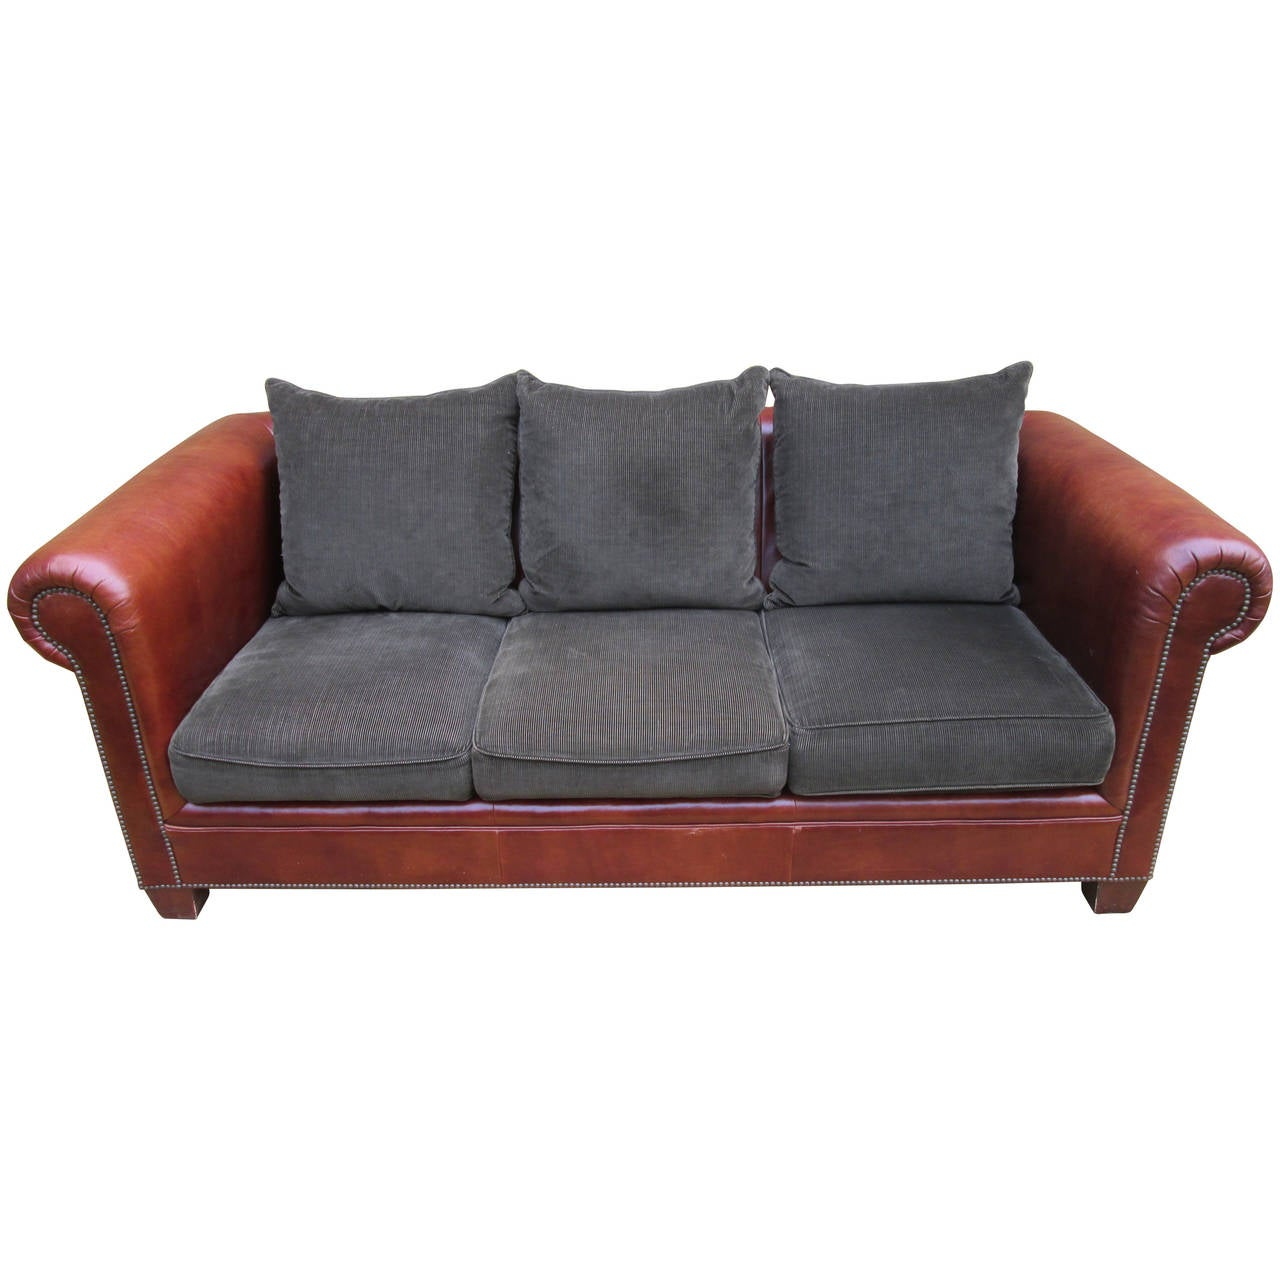 ralph lauren chair viking design leather sofa at 1stdibs